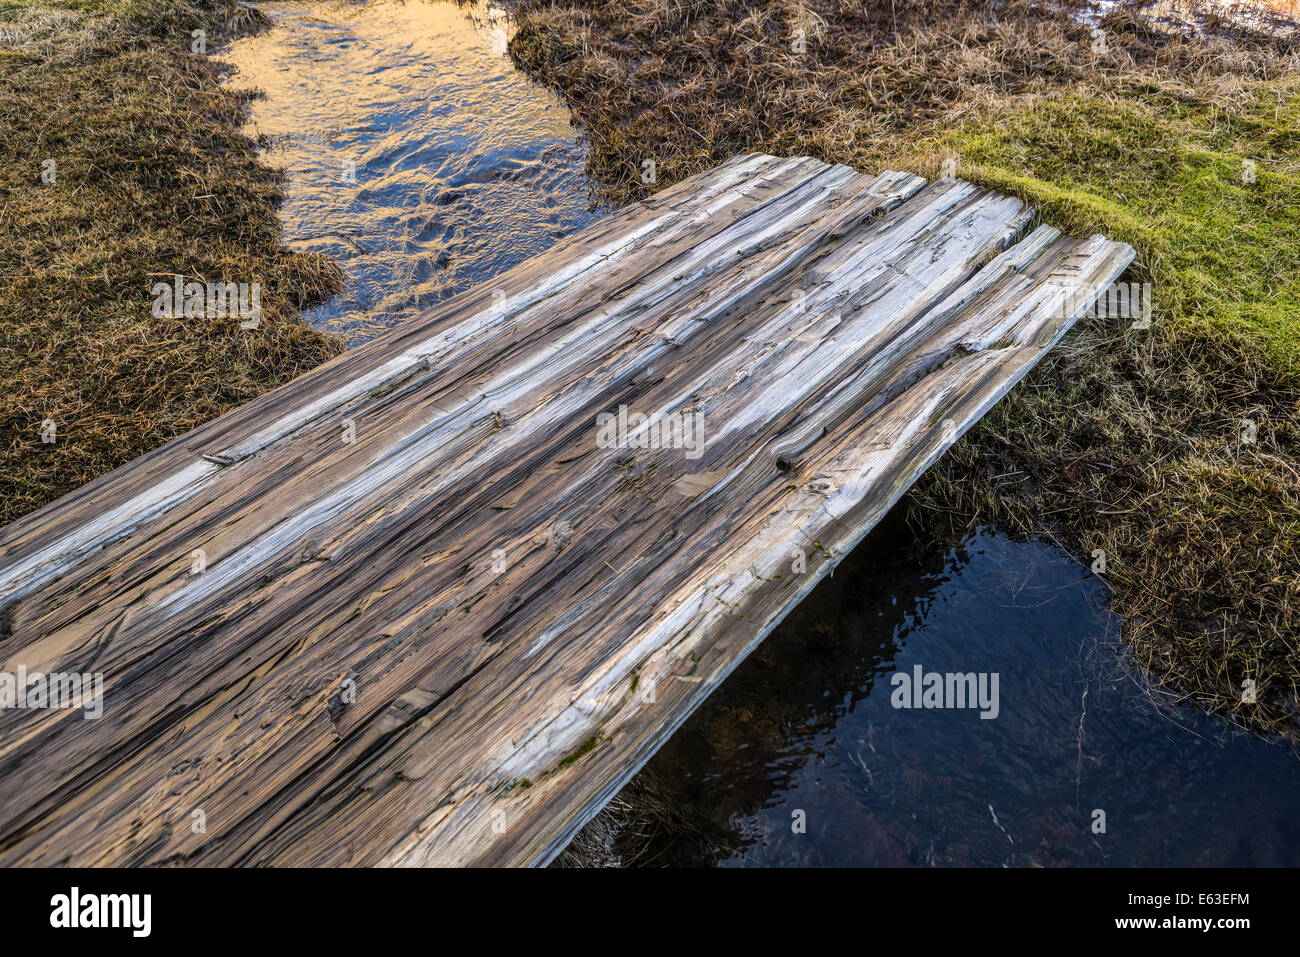 Wooden plank used as a bridge to cross over a creek, Stokksnes, Eastern Iceland - Stock Image